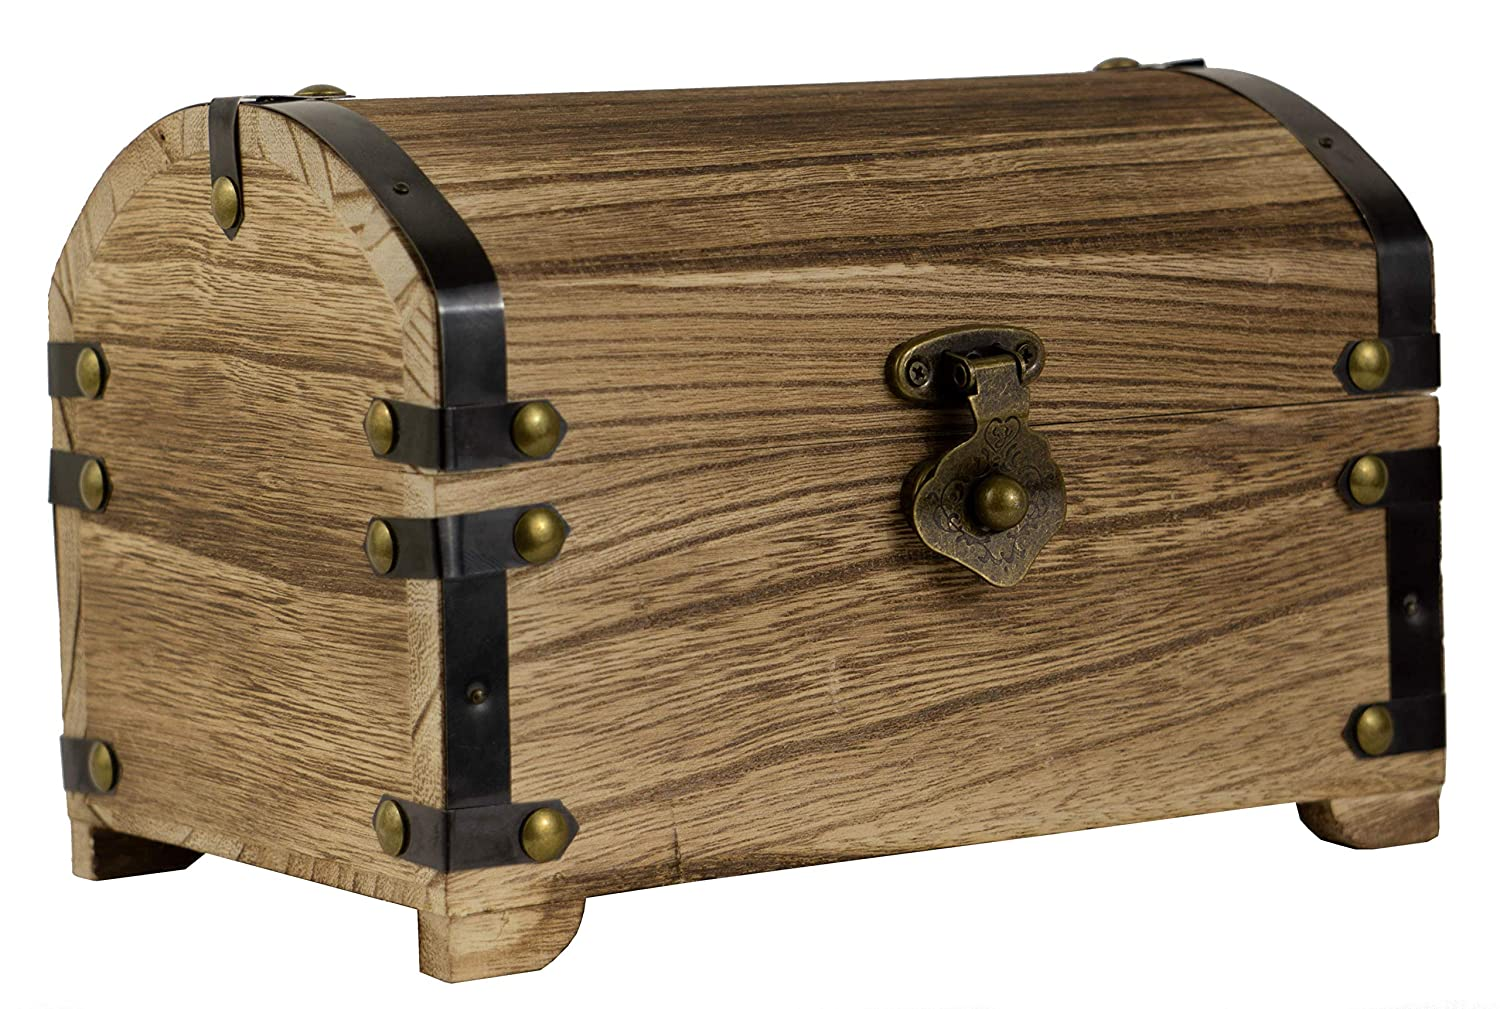 Amazon.com: CoreDP Decorative Vintage Wood Treasure Chest ...